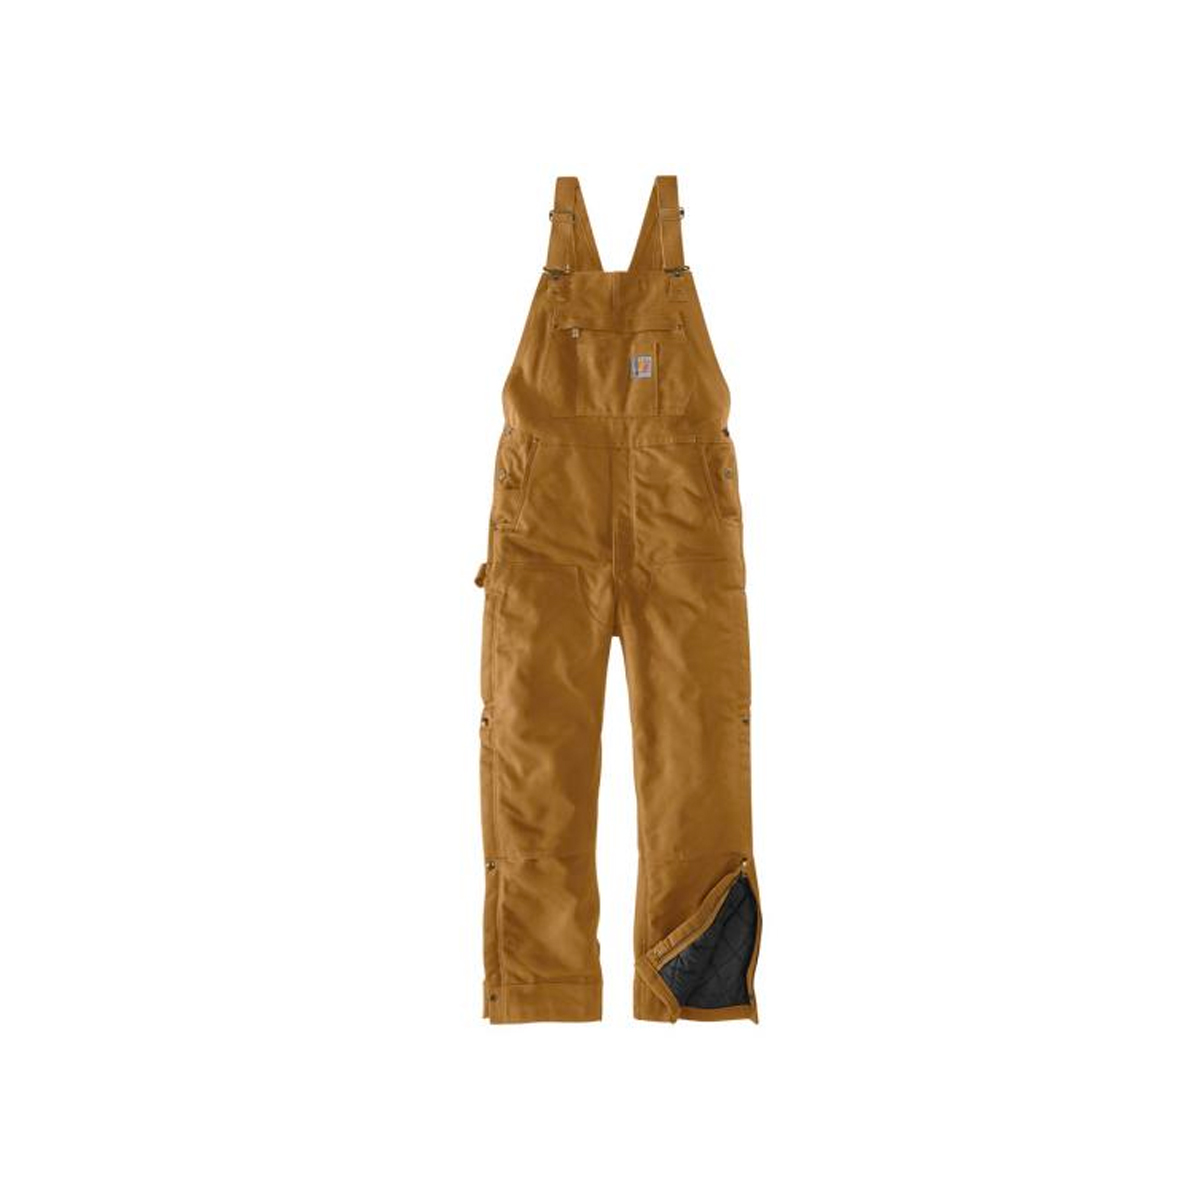 Men's Loose Fit Zip-to-Thigh Bib Overall, Wheat, swatch